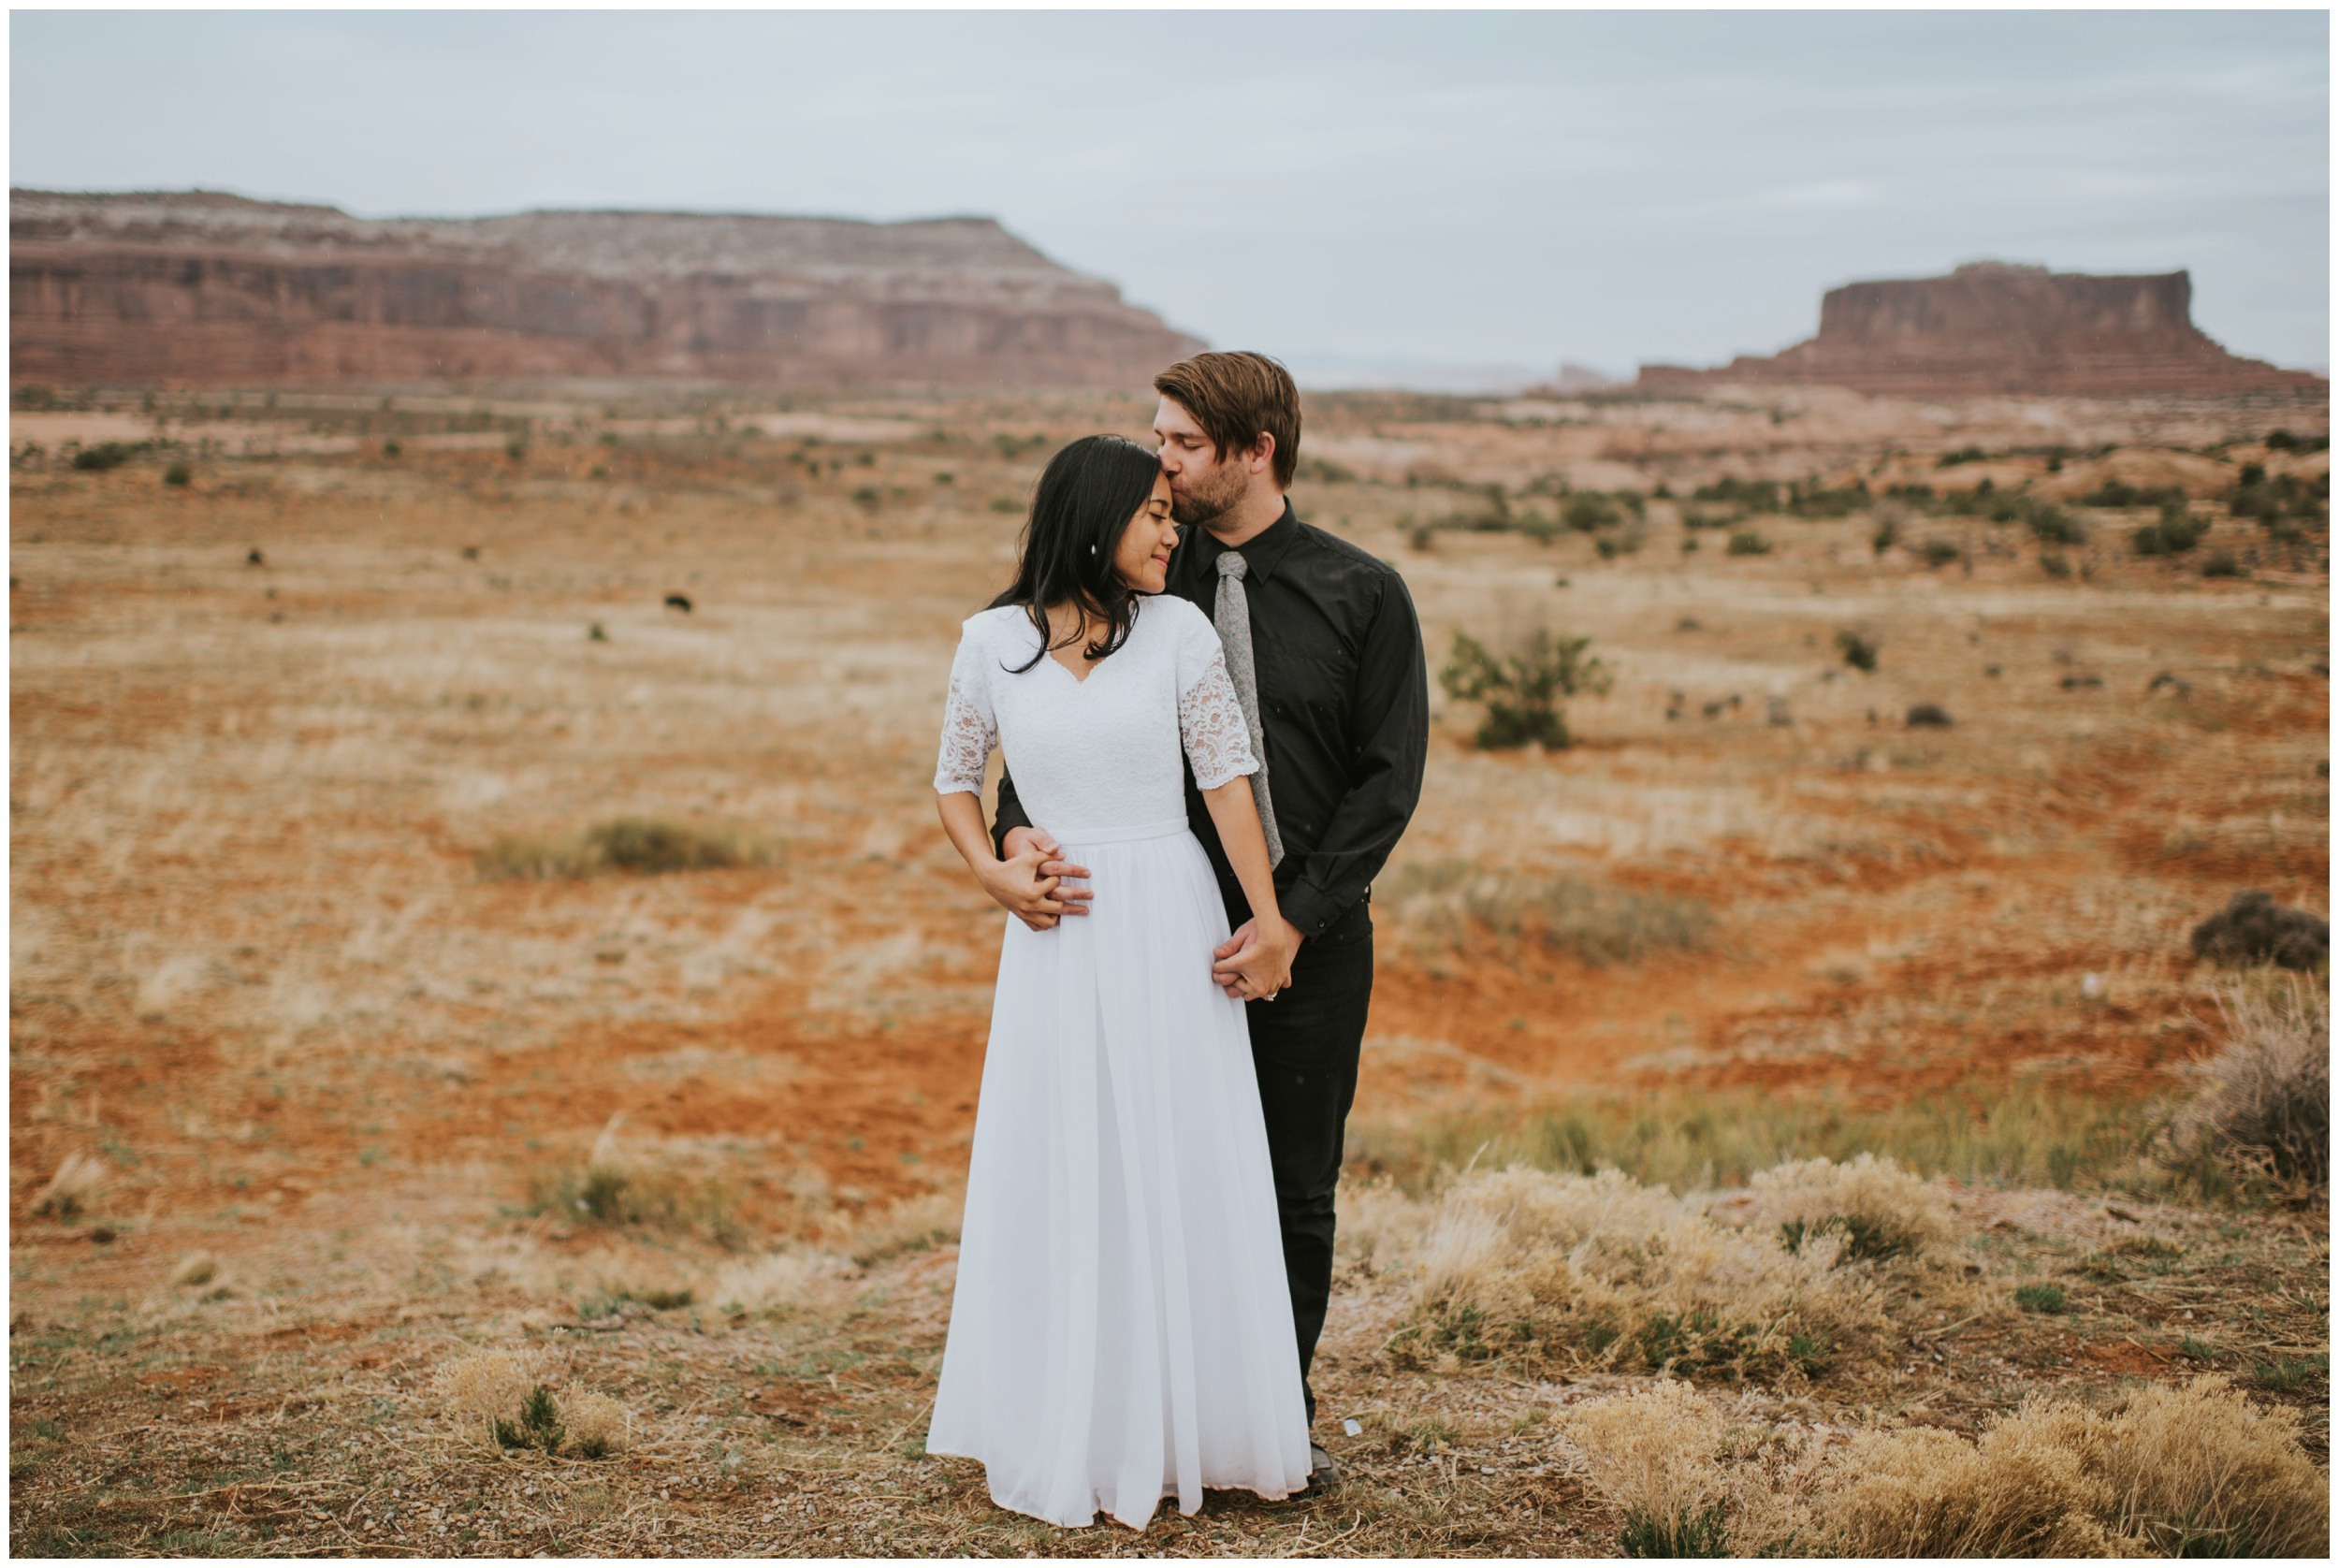 Tender moment during bridal portraits of groom kissing brides forehead  | Moab Utah, Photographer www.riversandroadsphotography.com